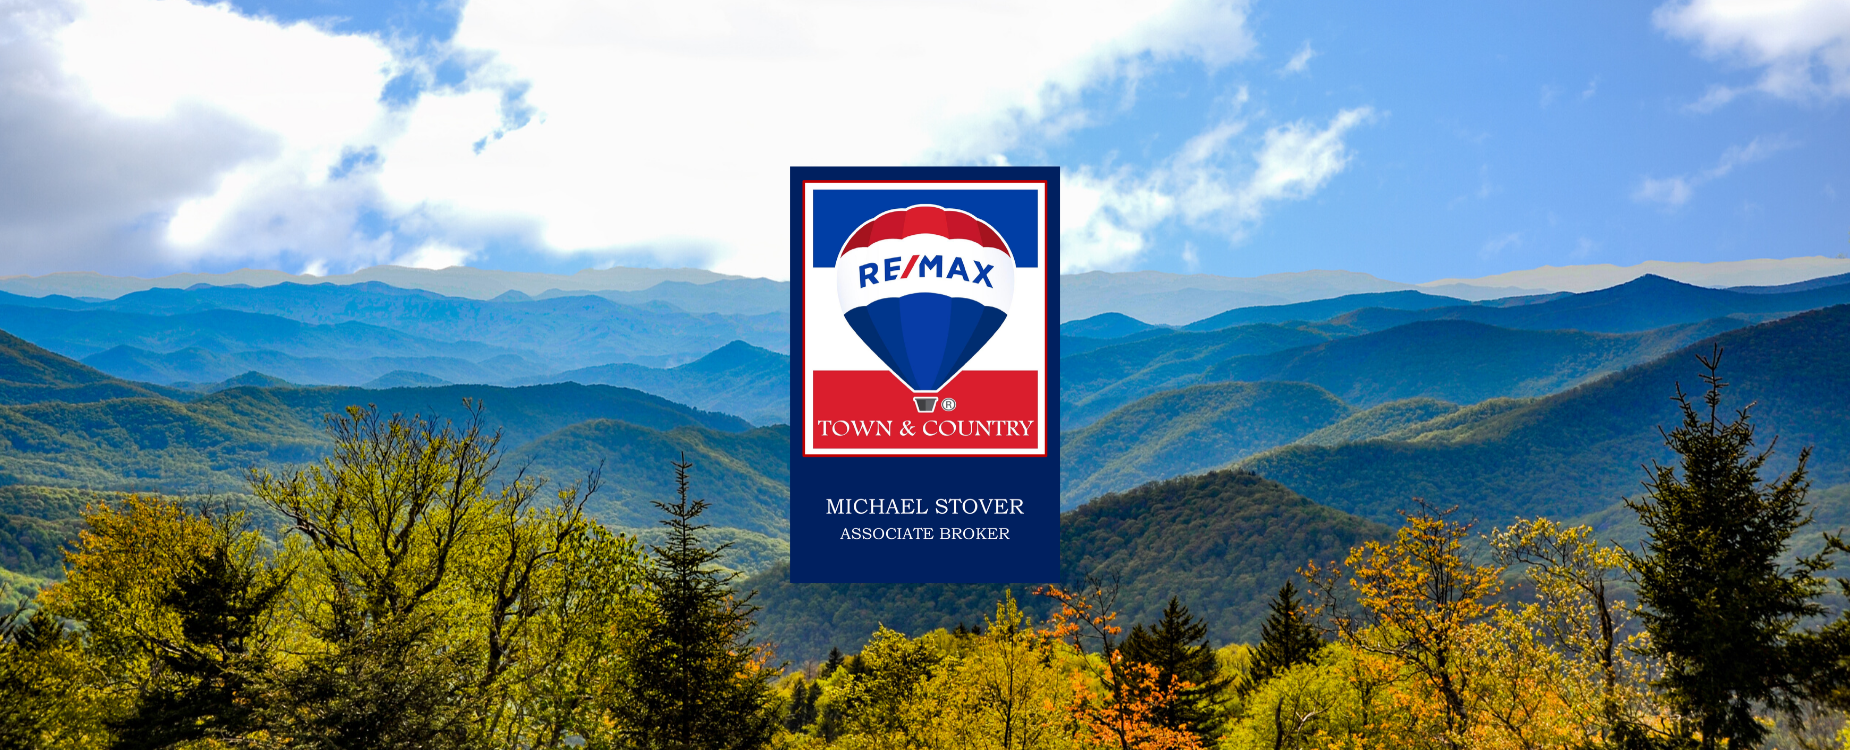 Mike Stover RE/MAX header 5